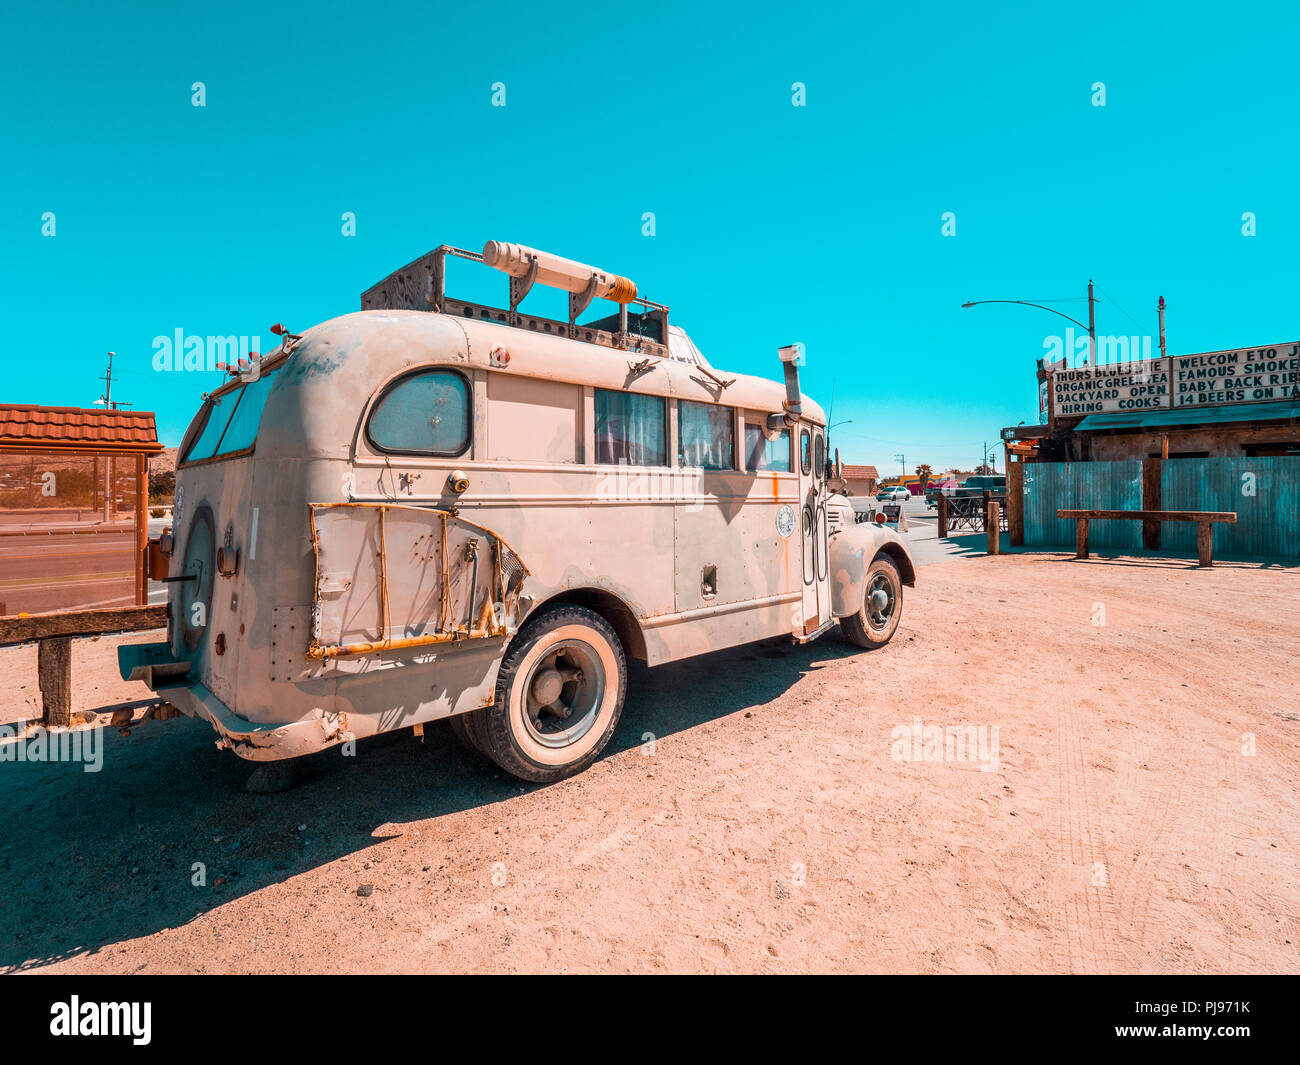 Vintage bus used to travel the world left behind in the desert - Stock Image